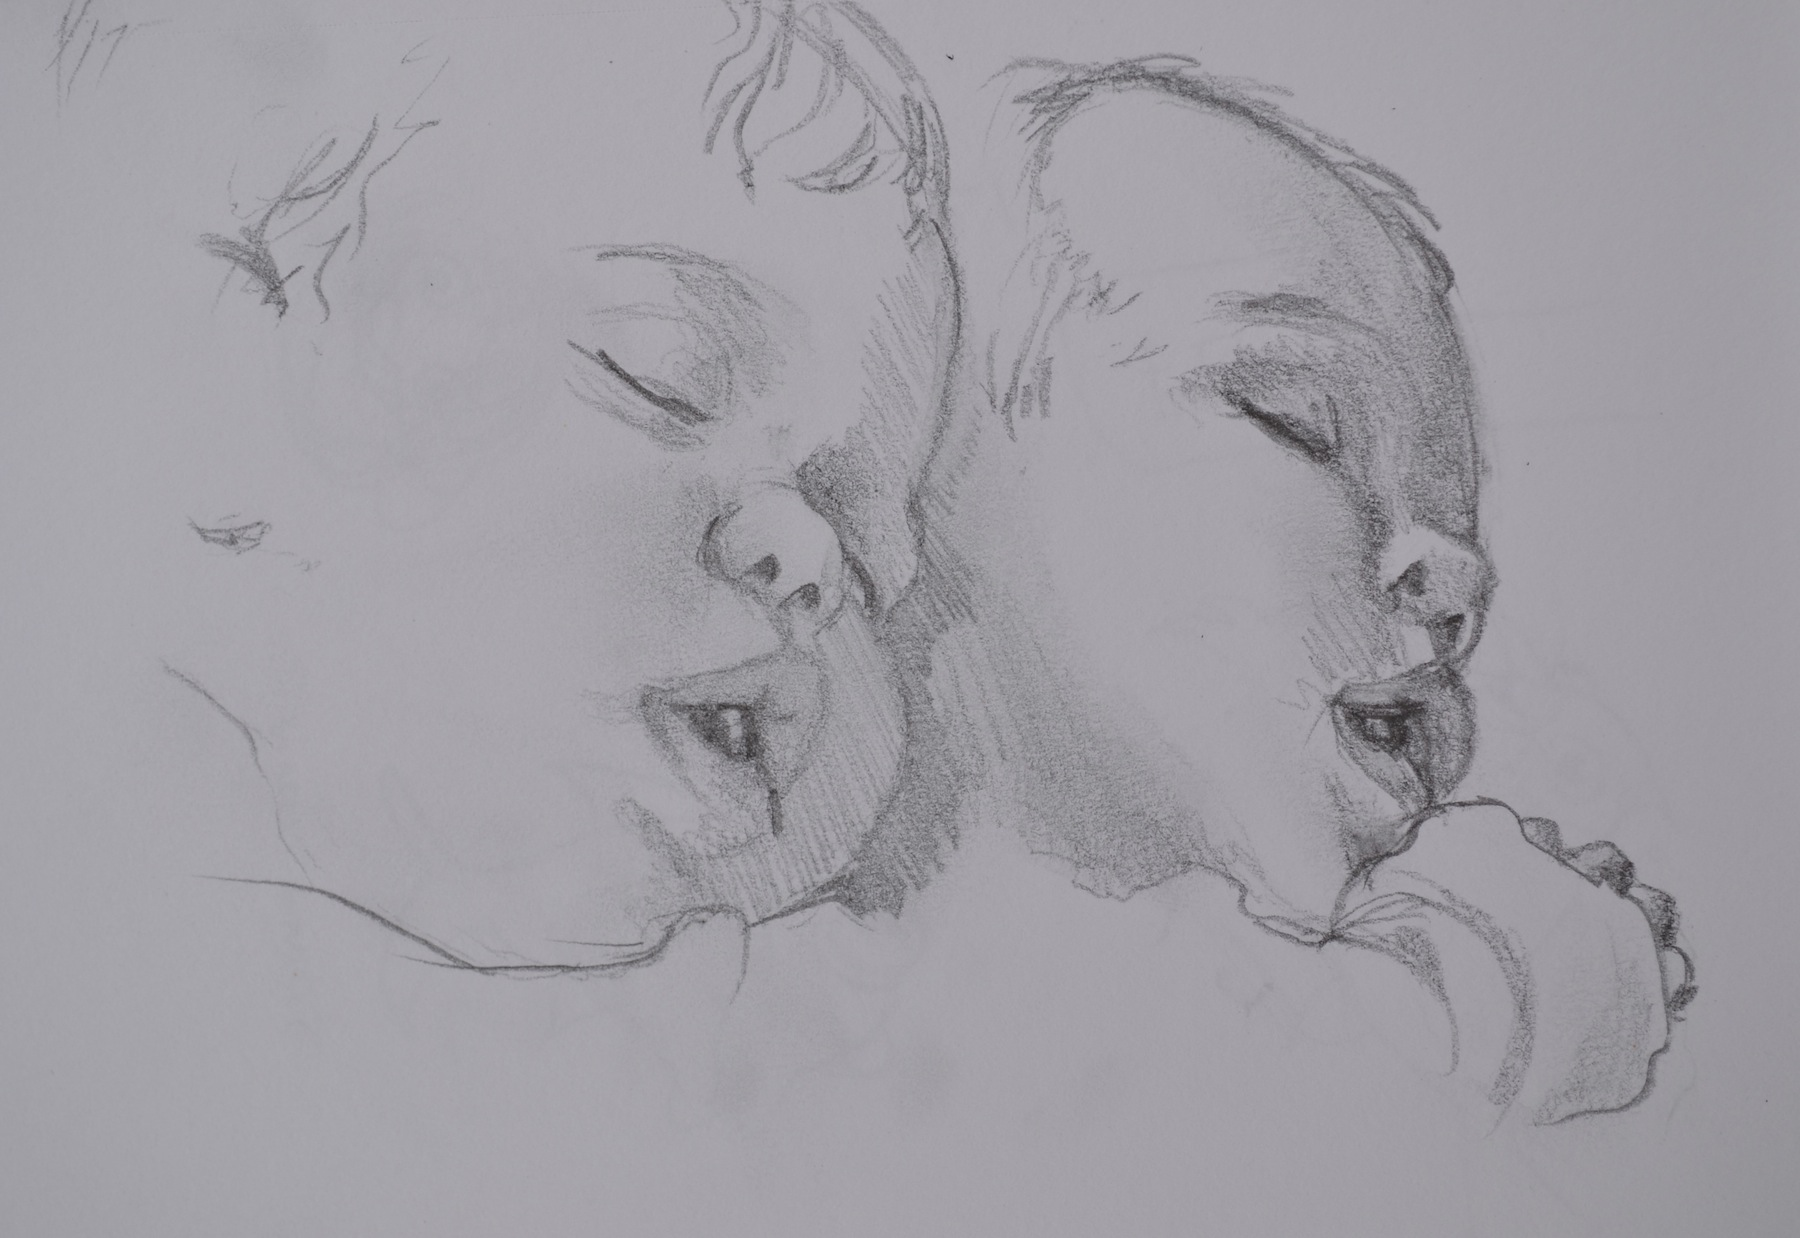 A quick sketch of a sleeping baby by Jonathan Fenske